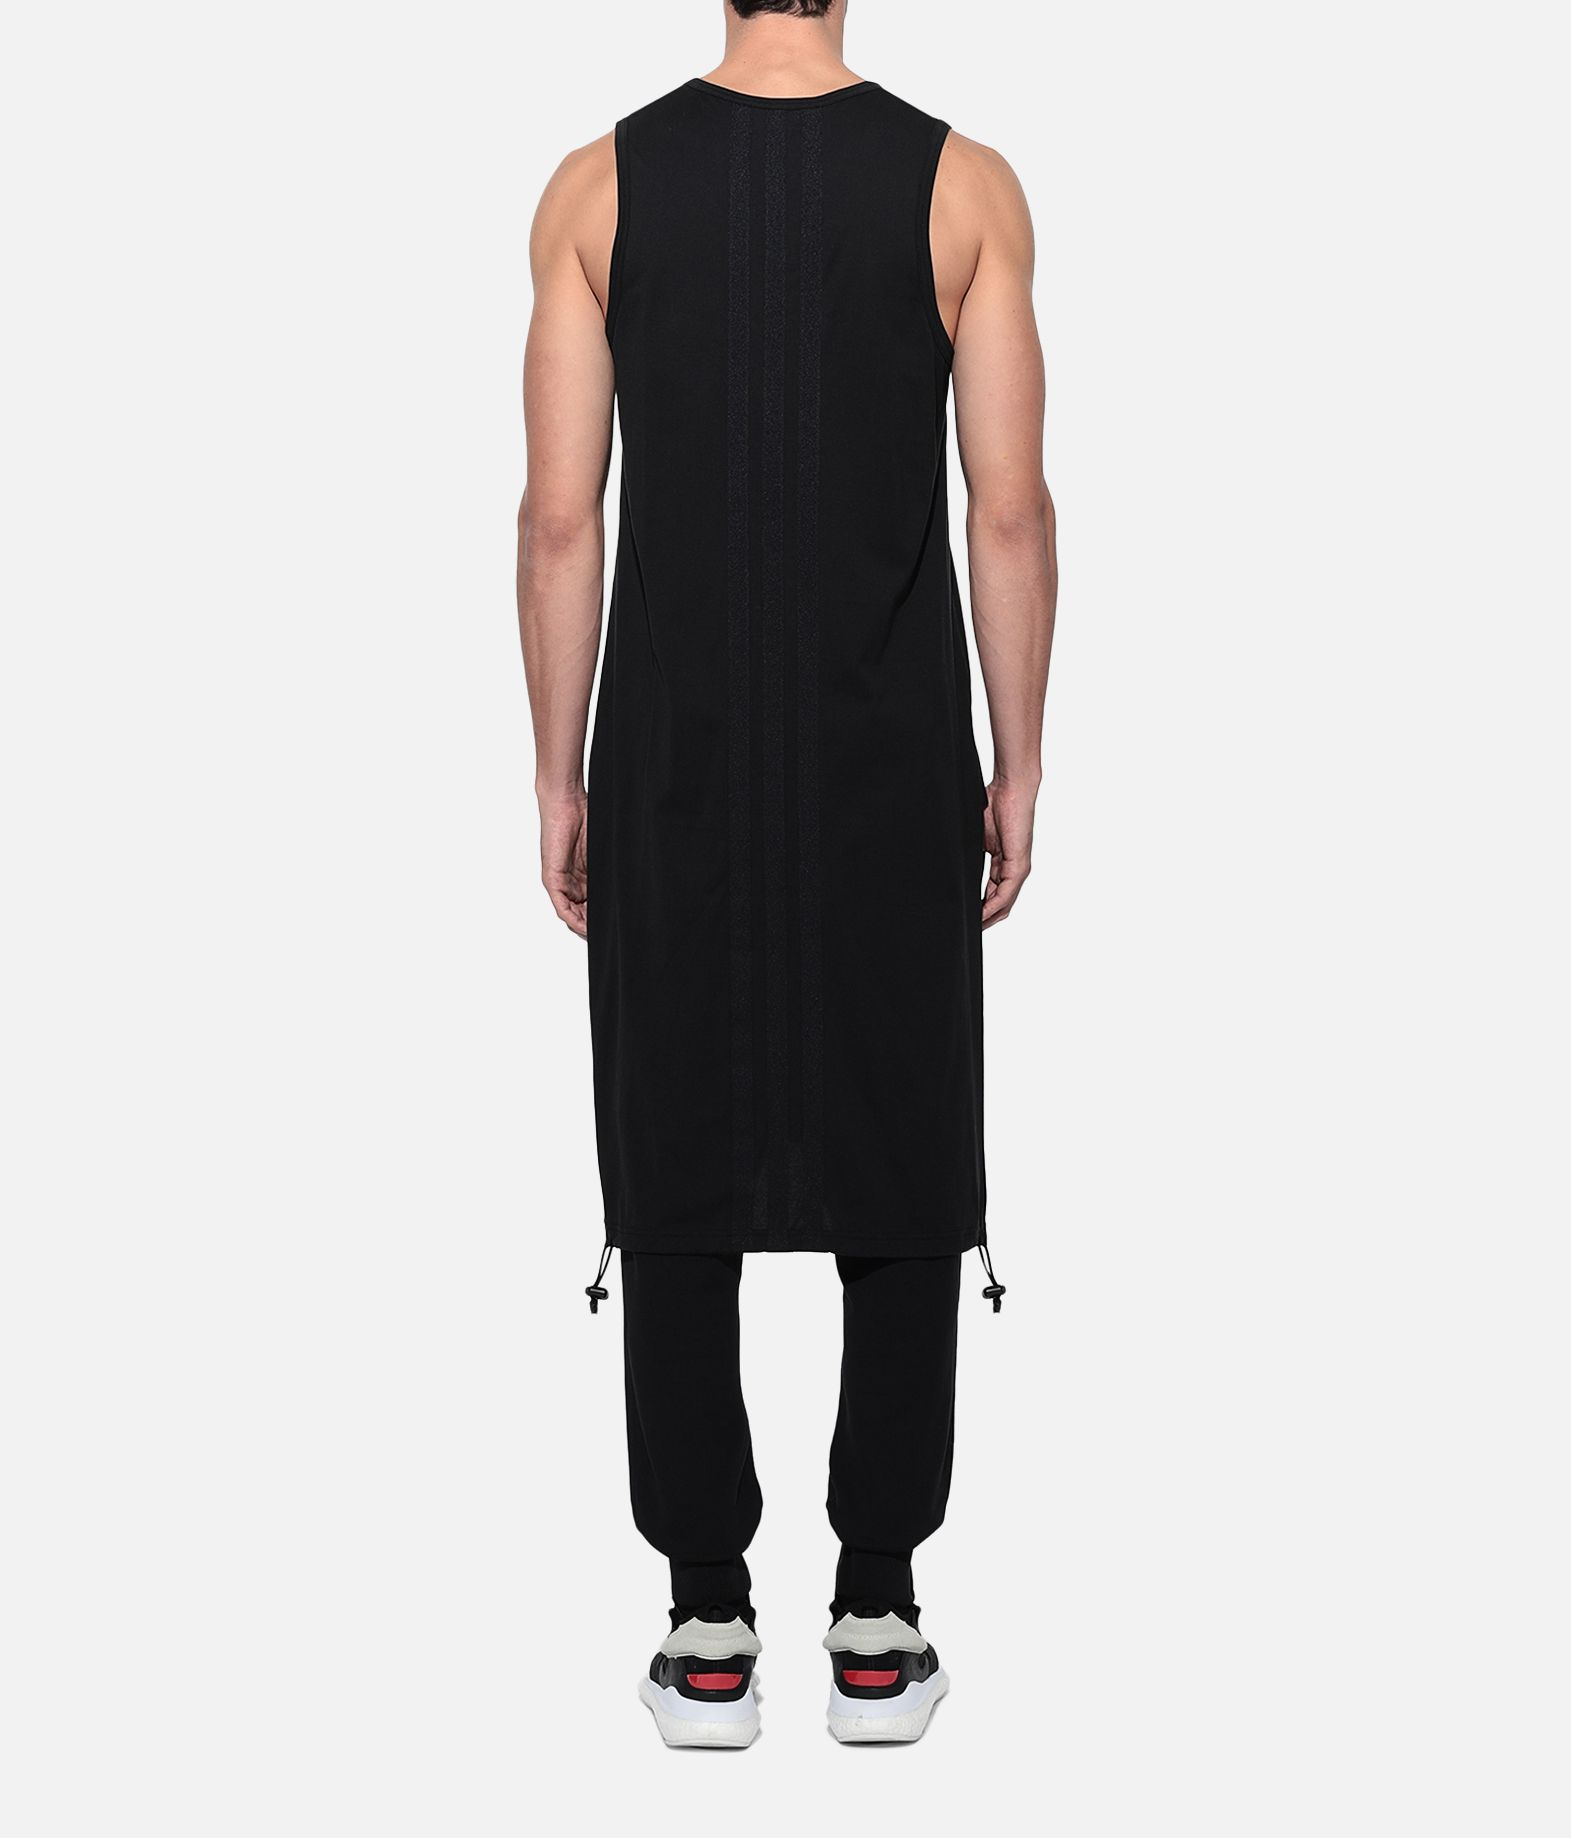 Y-3 Y-3 Drawstring Long Tank Top  Canotta Uomo d